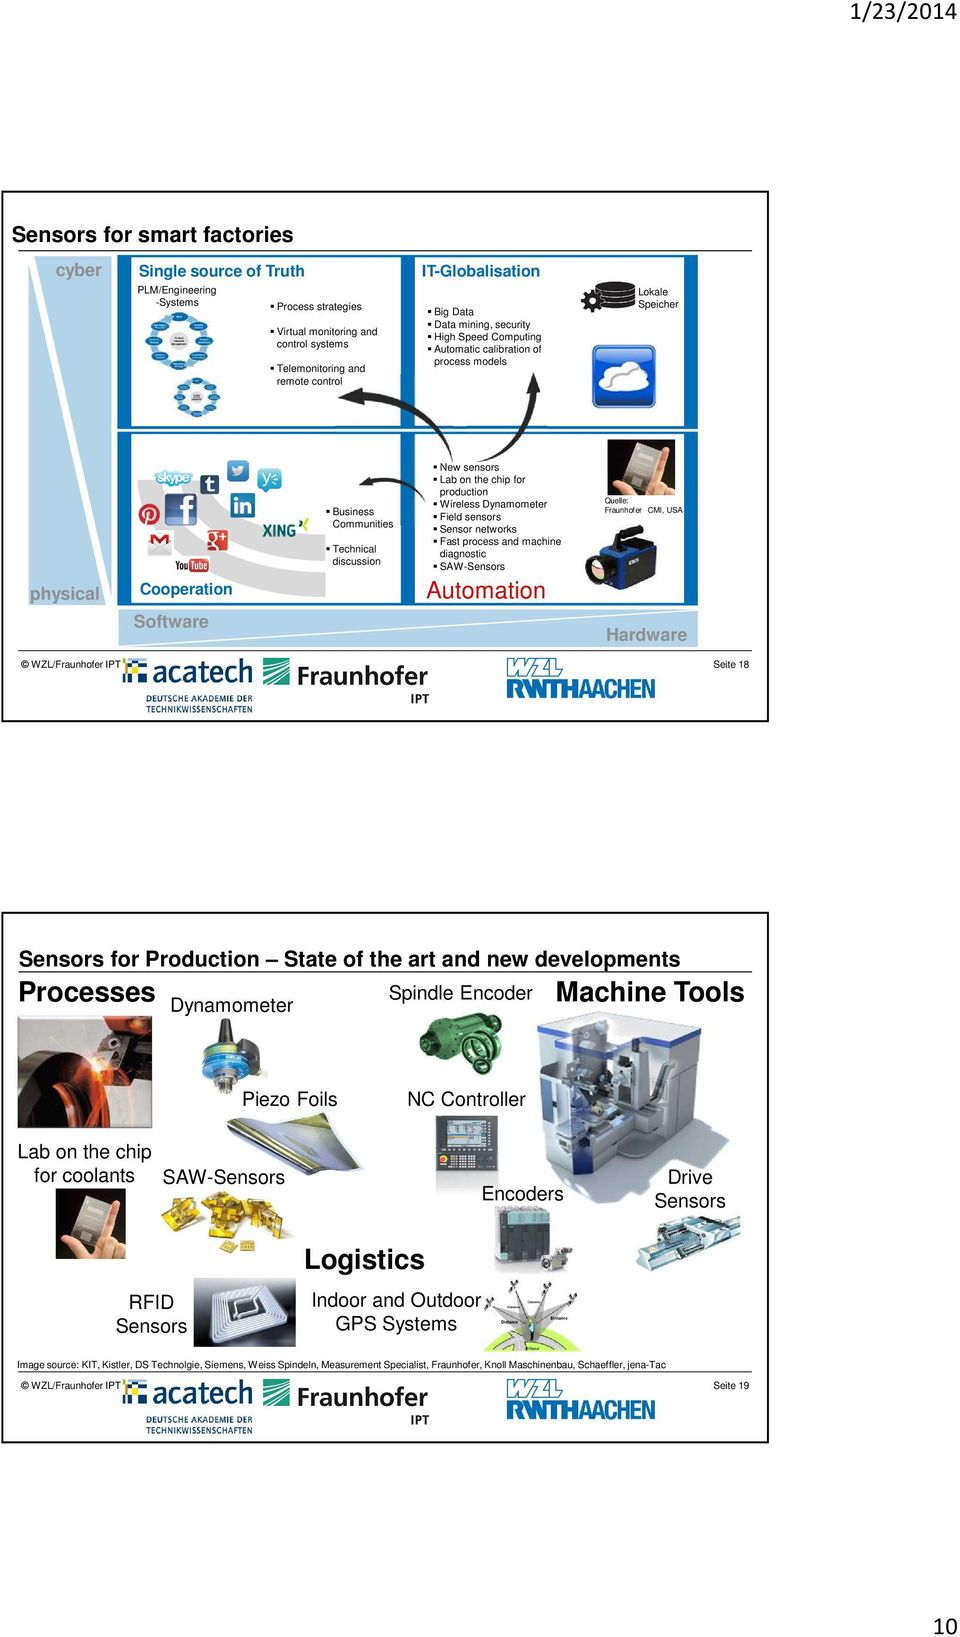 for production Wireless Dynamometer Field sensors Sensor networks Fast process and machine diagnostic SAW-Sensors Automation Quelle: Fraunhofer CMI, USA Hardware Seite 18 Sensors for Production State